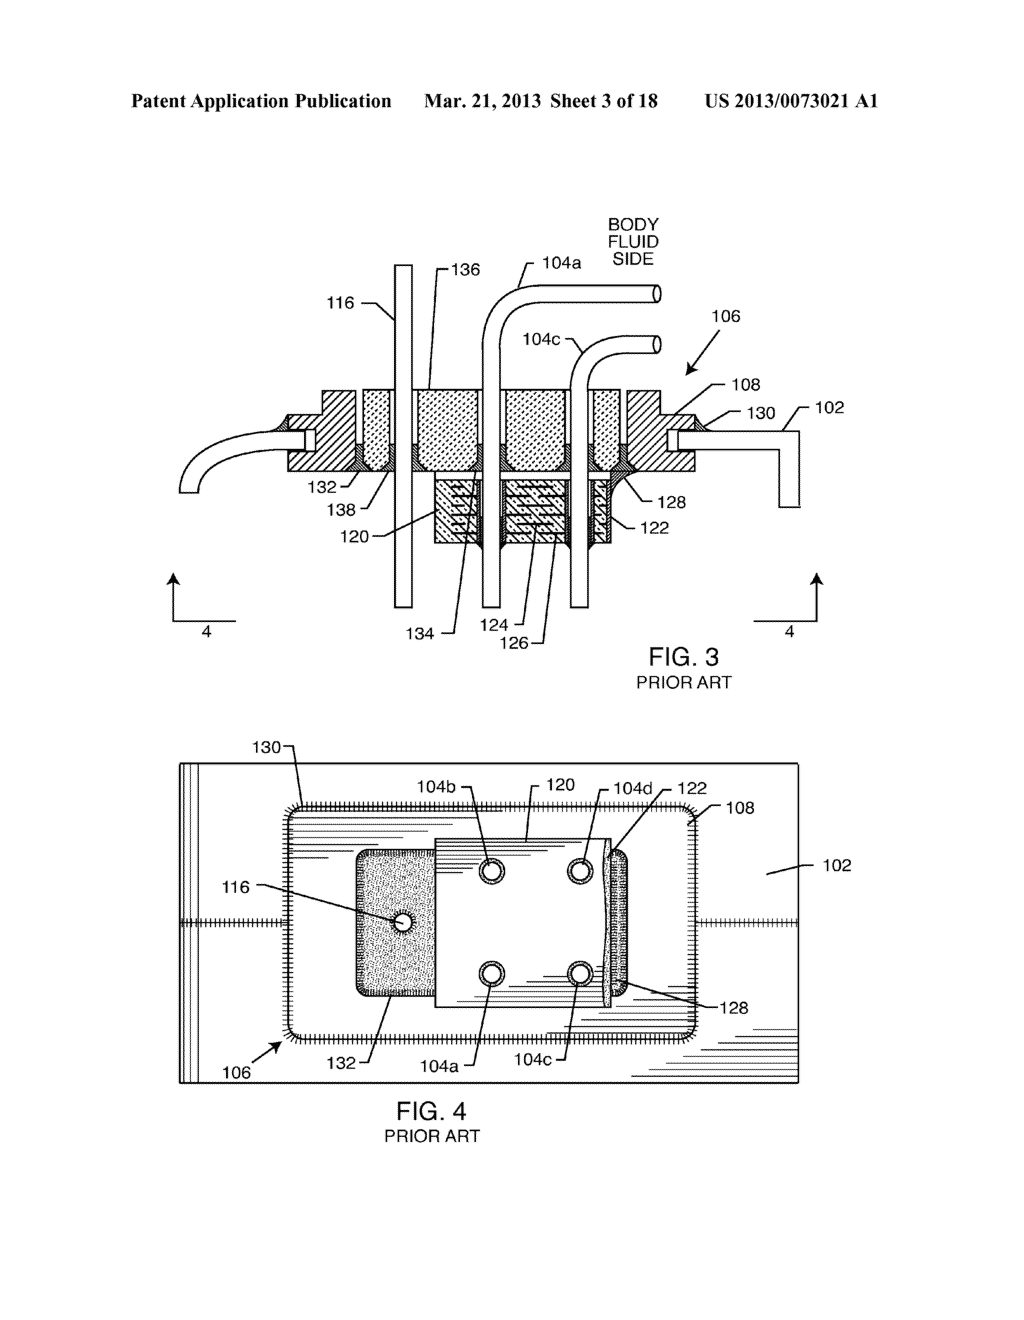 Band Stop Filter Employing A Capacitor And An Inductor Tank Circuit To Enhance Mri Compatibility Of Active Medical Devices Diagram Schematic Image